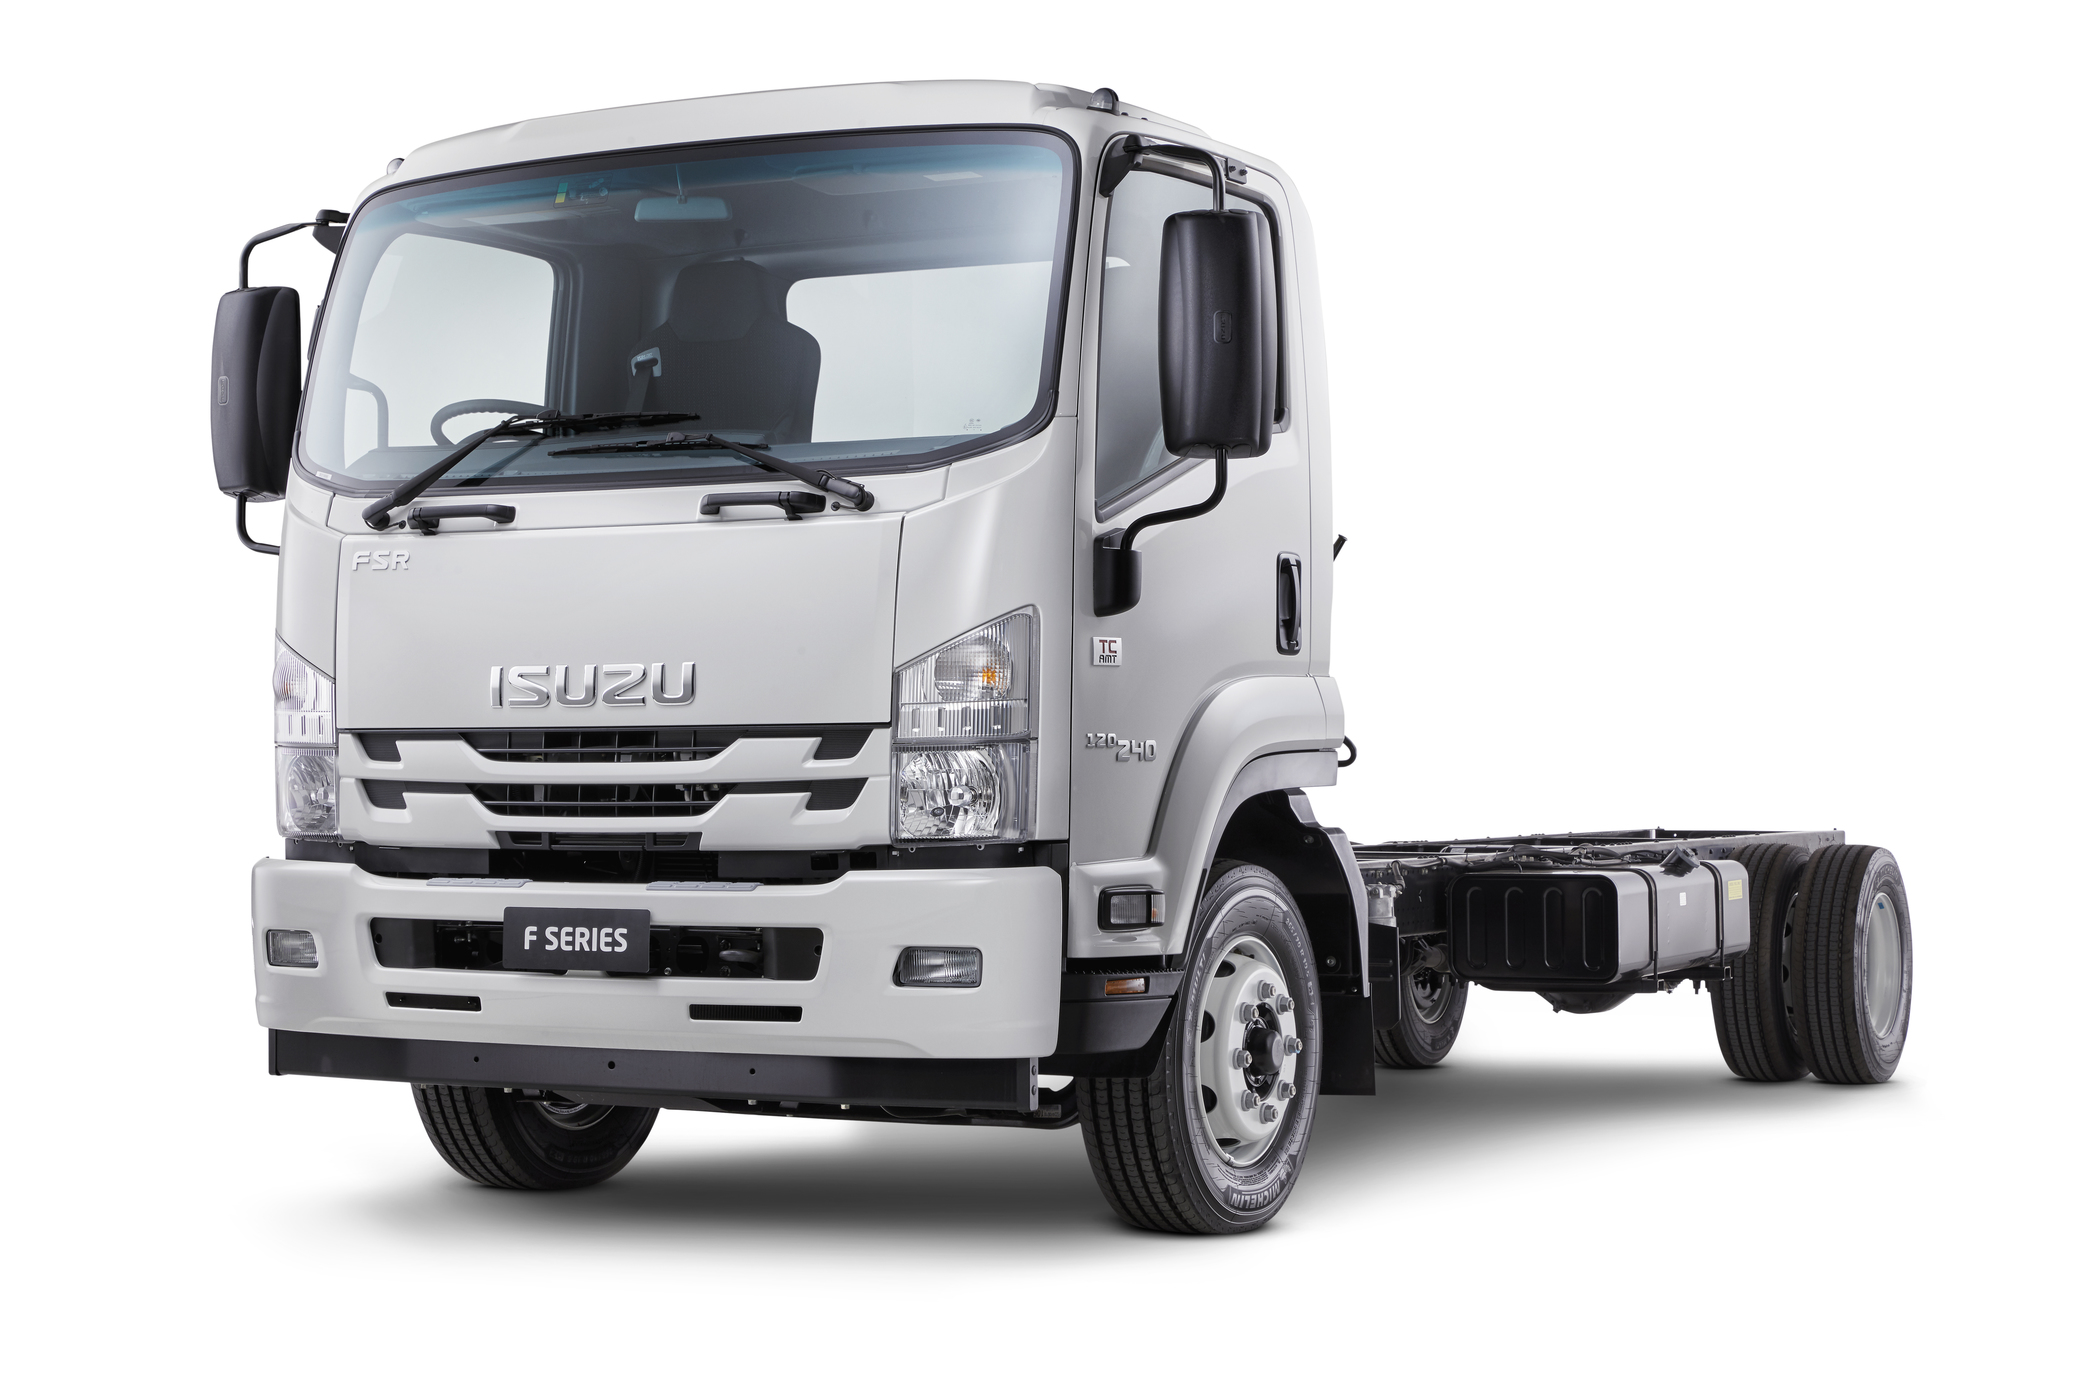 Performance and Peace of Mind in Isuzu F Series 3